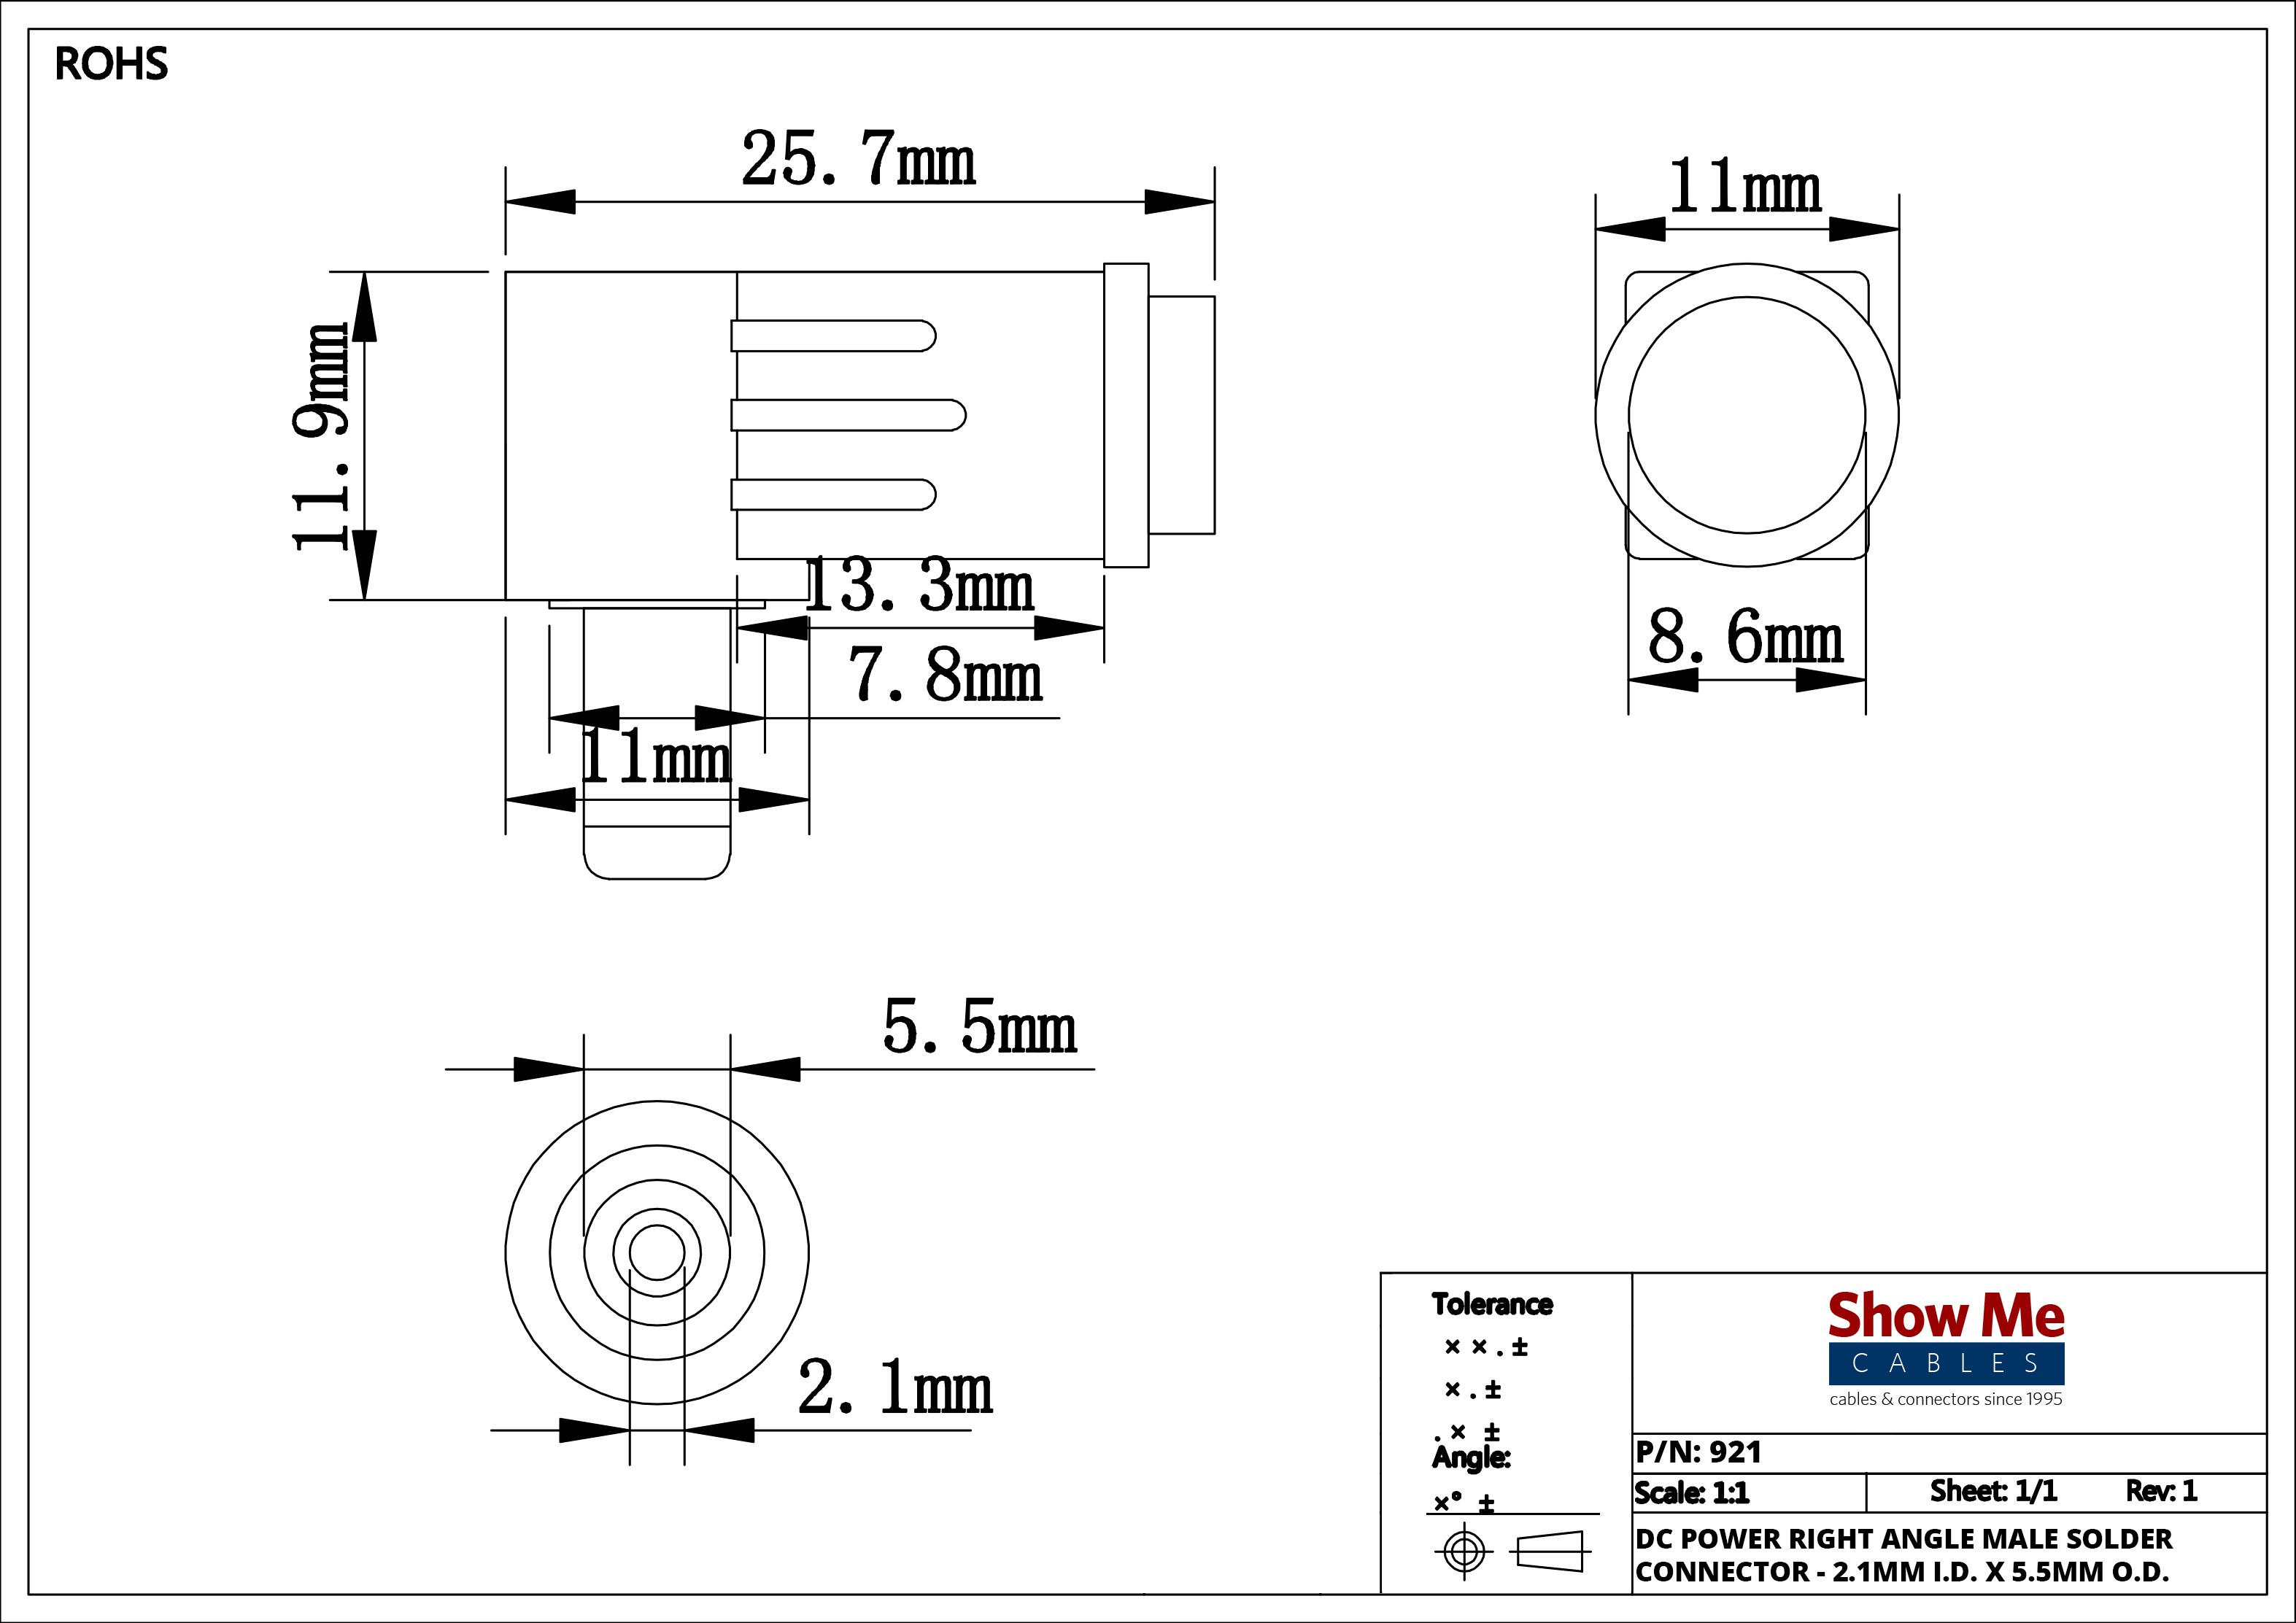 walk in cooler wiring diagram Collection-home speaker wiring diagram 3 5 mm stereo jack wiring diagram elegant 2 5mm id od power best 1a 9-h